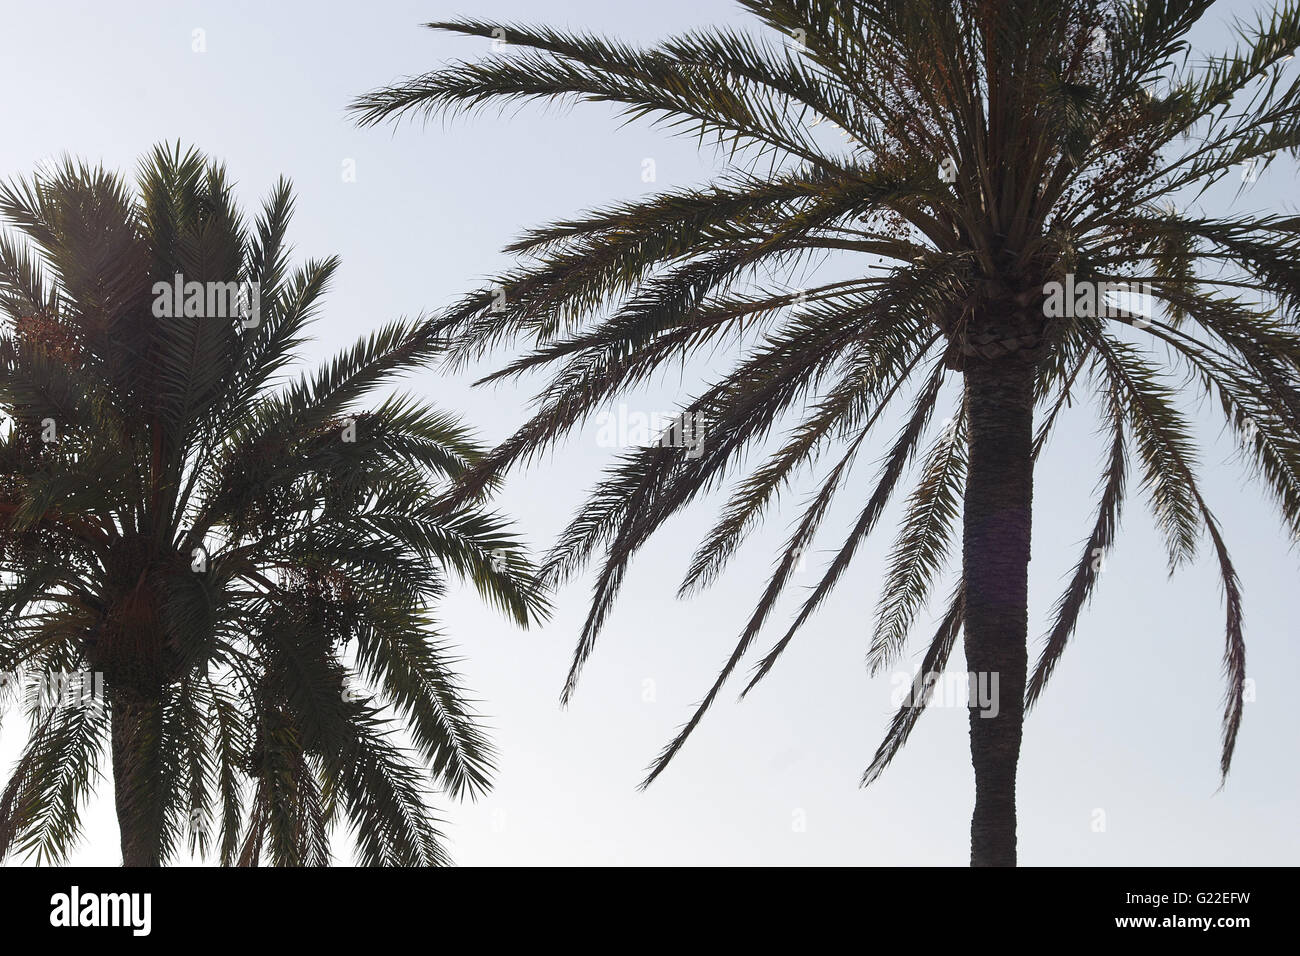 a beautiful poetic detail picture of two palm trees on the boulevard of Palma shot from below against a clear blue - Stock Image